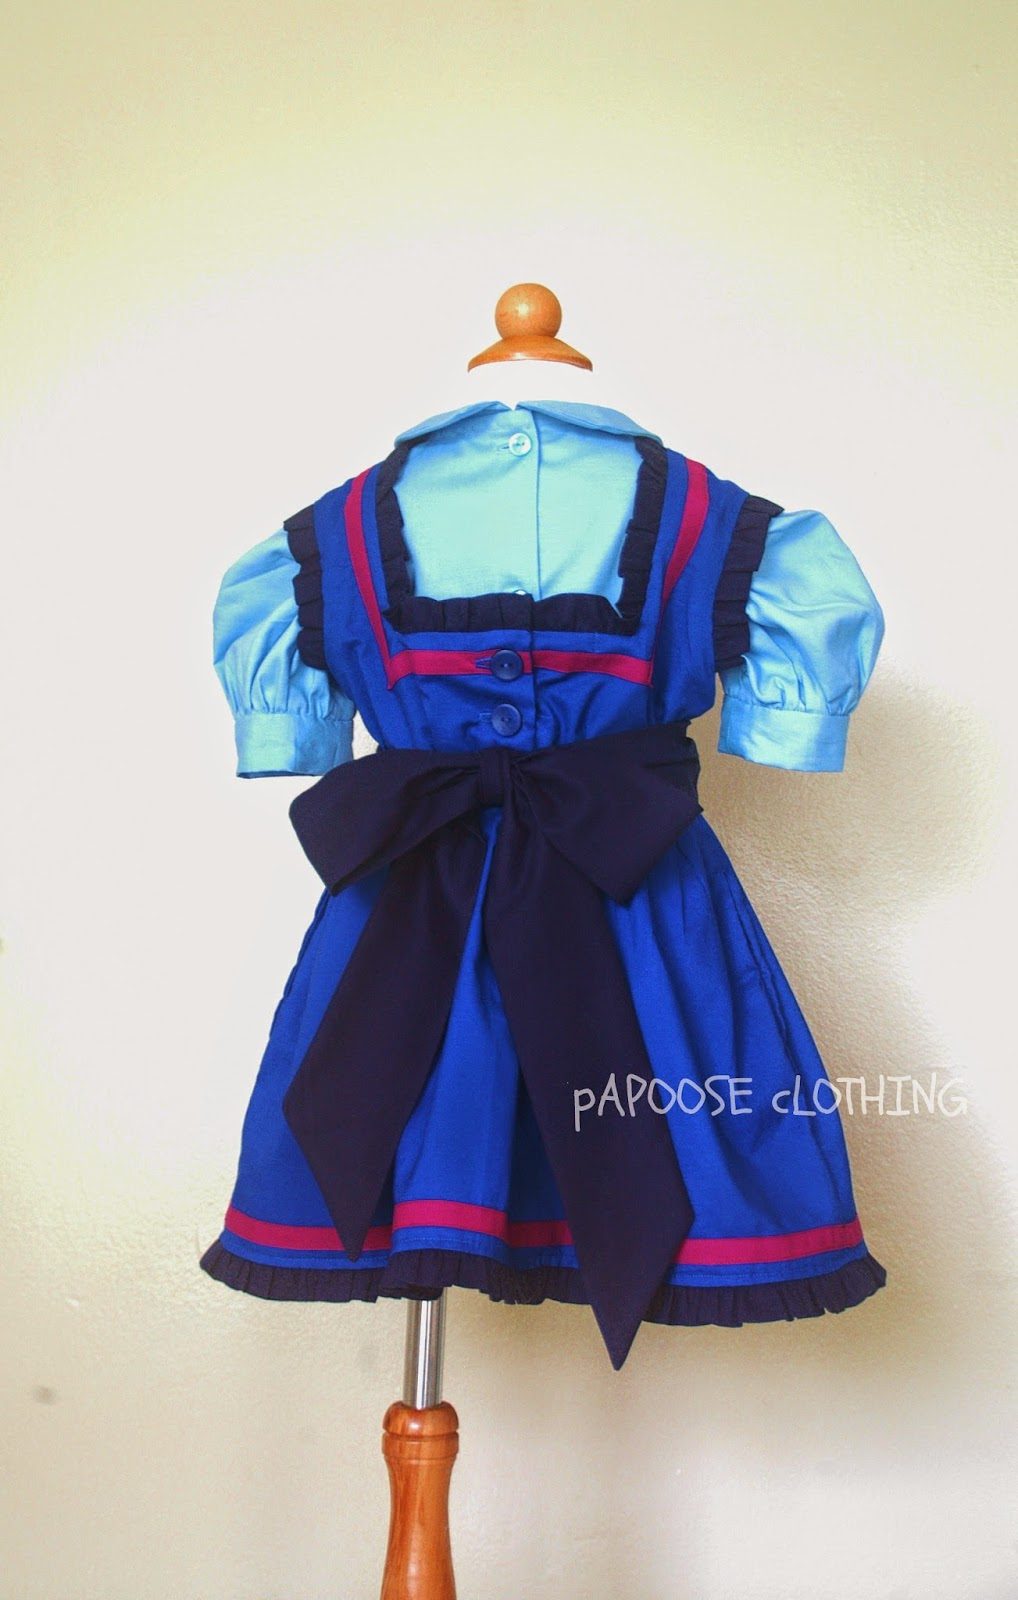 http://www.papooseclothing.com/store/p46/Ice_Princess_Blue_Pinafore_Dress_and_Blouse.html